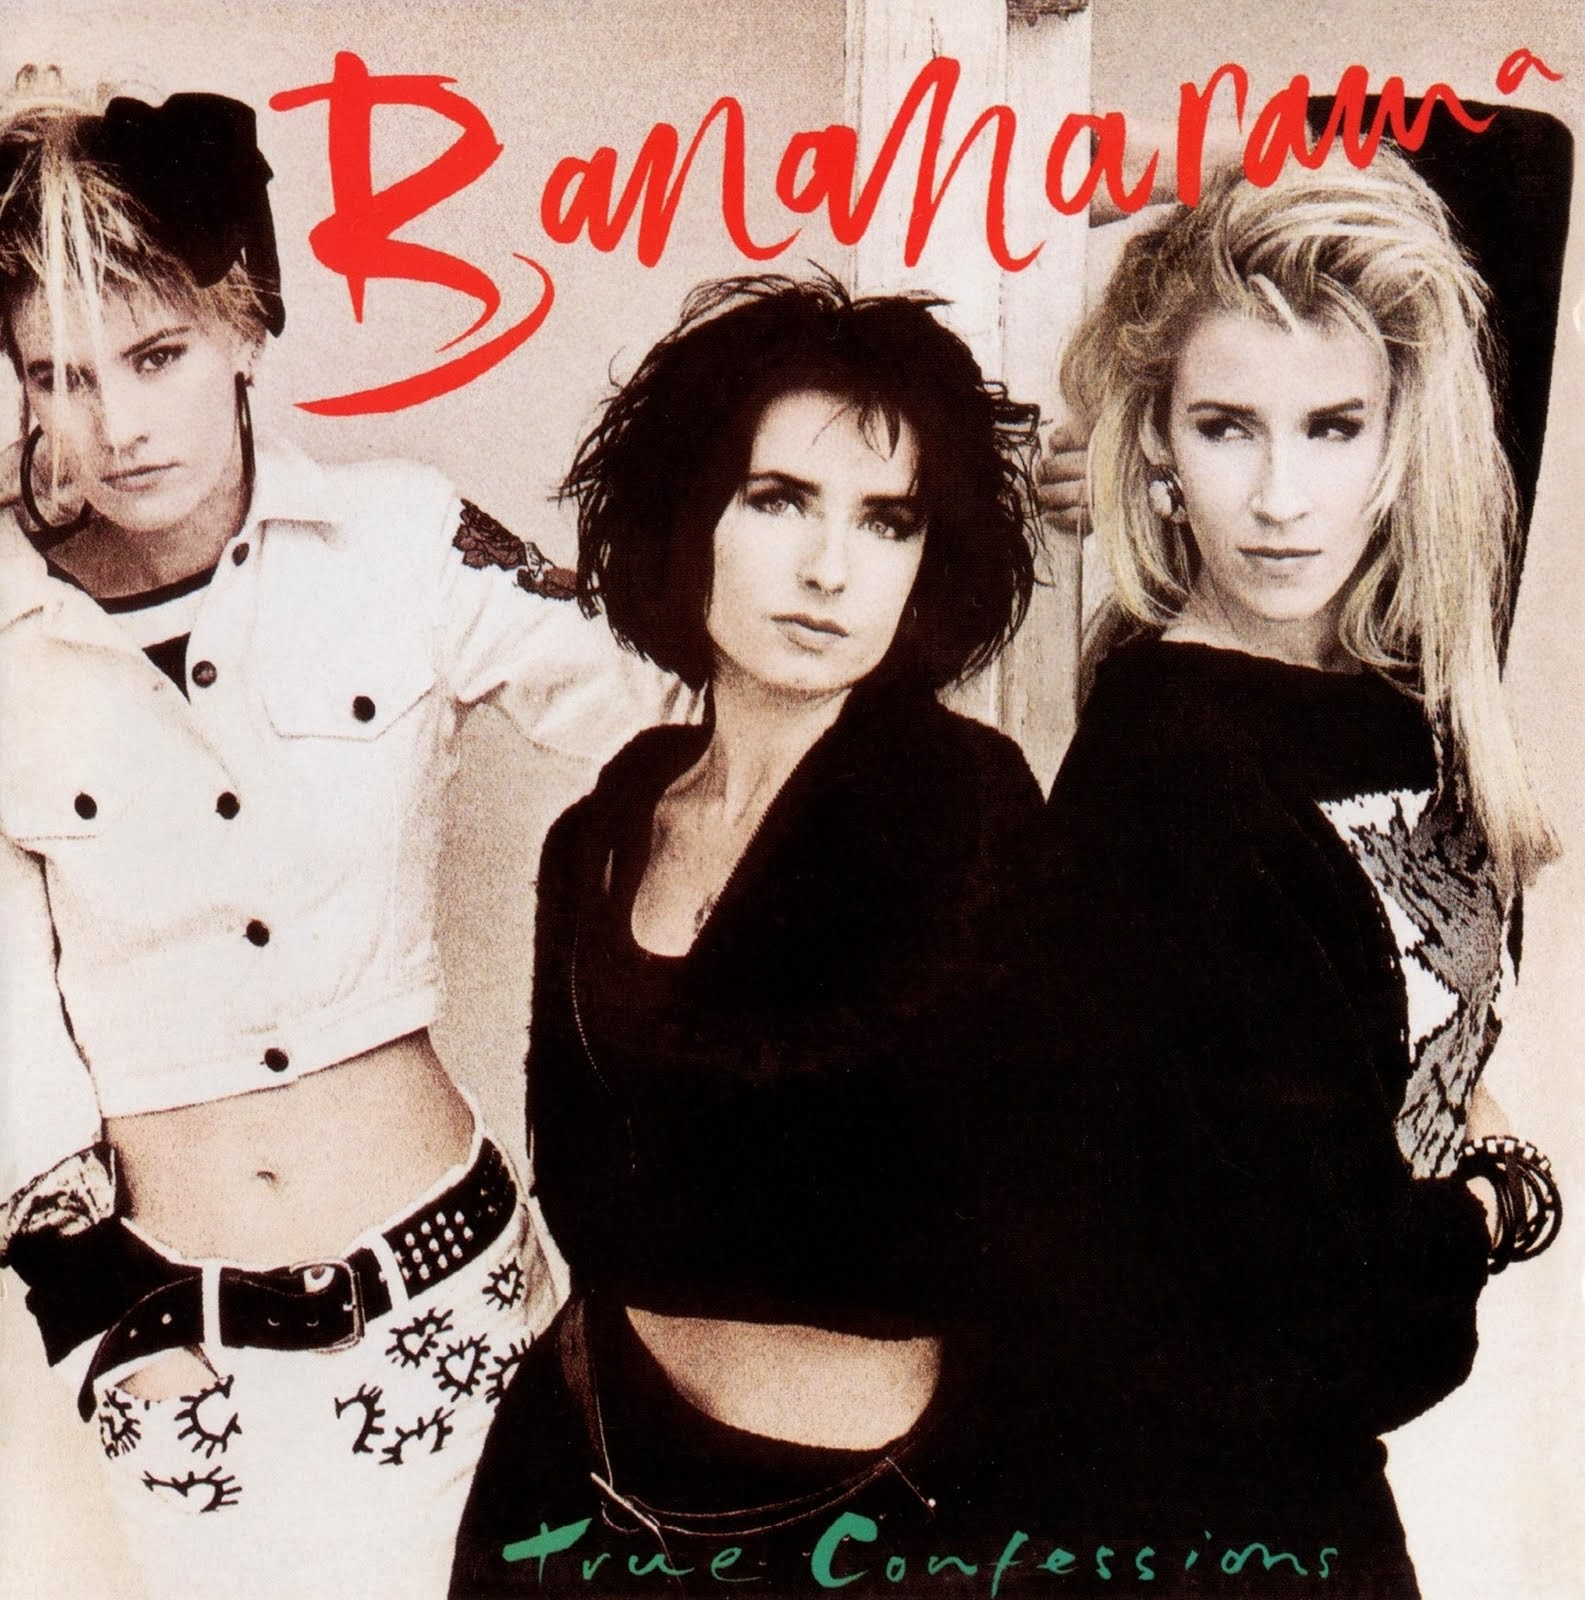 Bananarama Reunites With Original Lineup